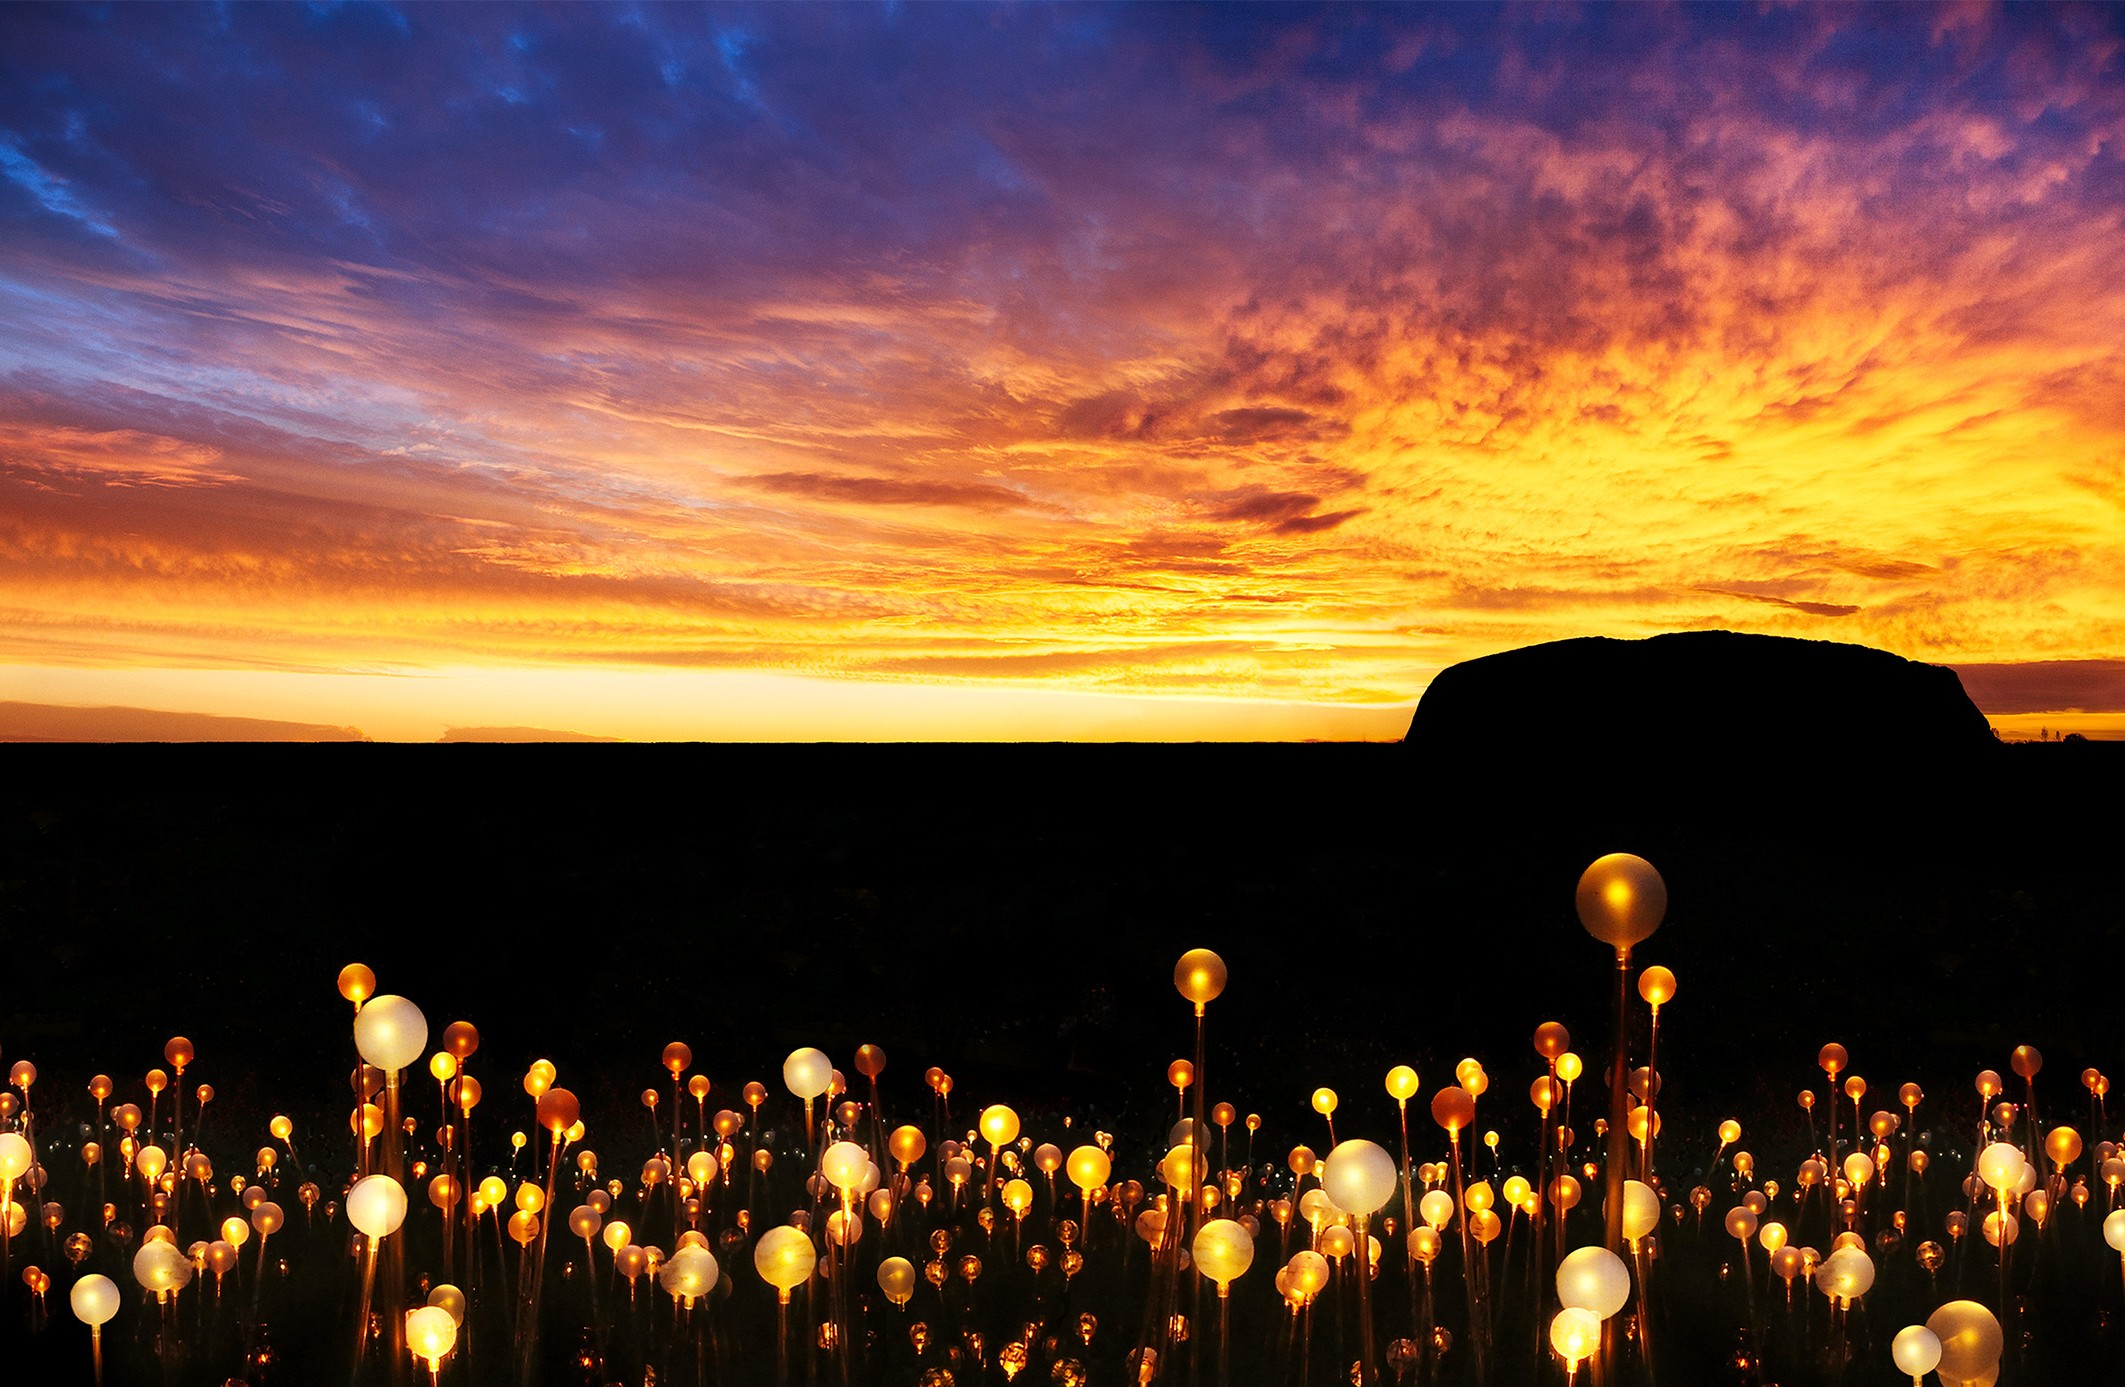 High Quality Striking Large Scale Art Piece U0027Field Of Lightu0027 By British Installation  Artist Bruce Munro Will Be Coming To Ayers Rock Resort Next Year To  Illuminate A ... Gallery